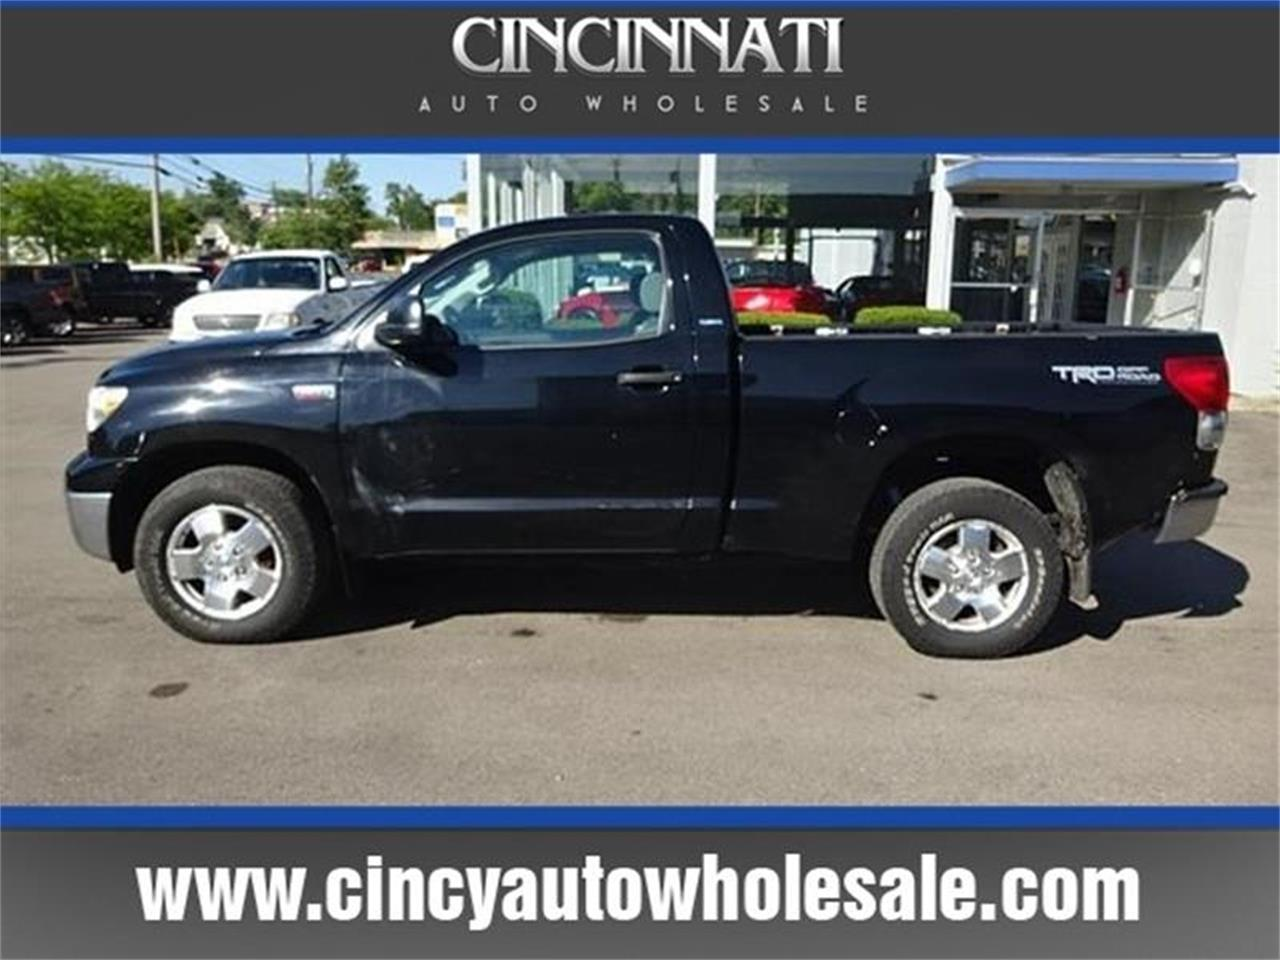 Large Picture of '08 Tundra located in Loveland Ohio - $11,000.00 Offered by Cincinnati Auto Wholesale - MBKP